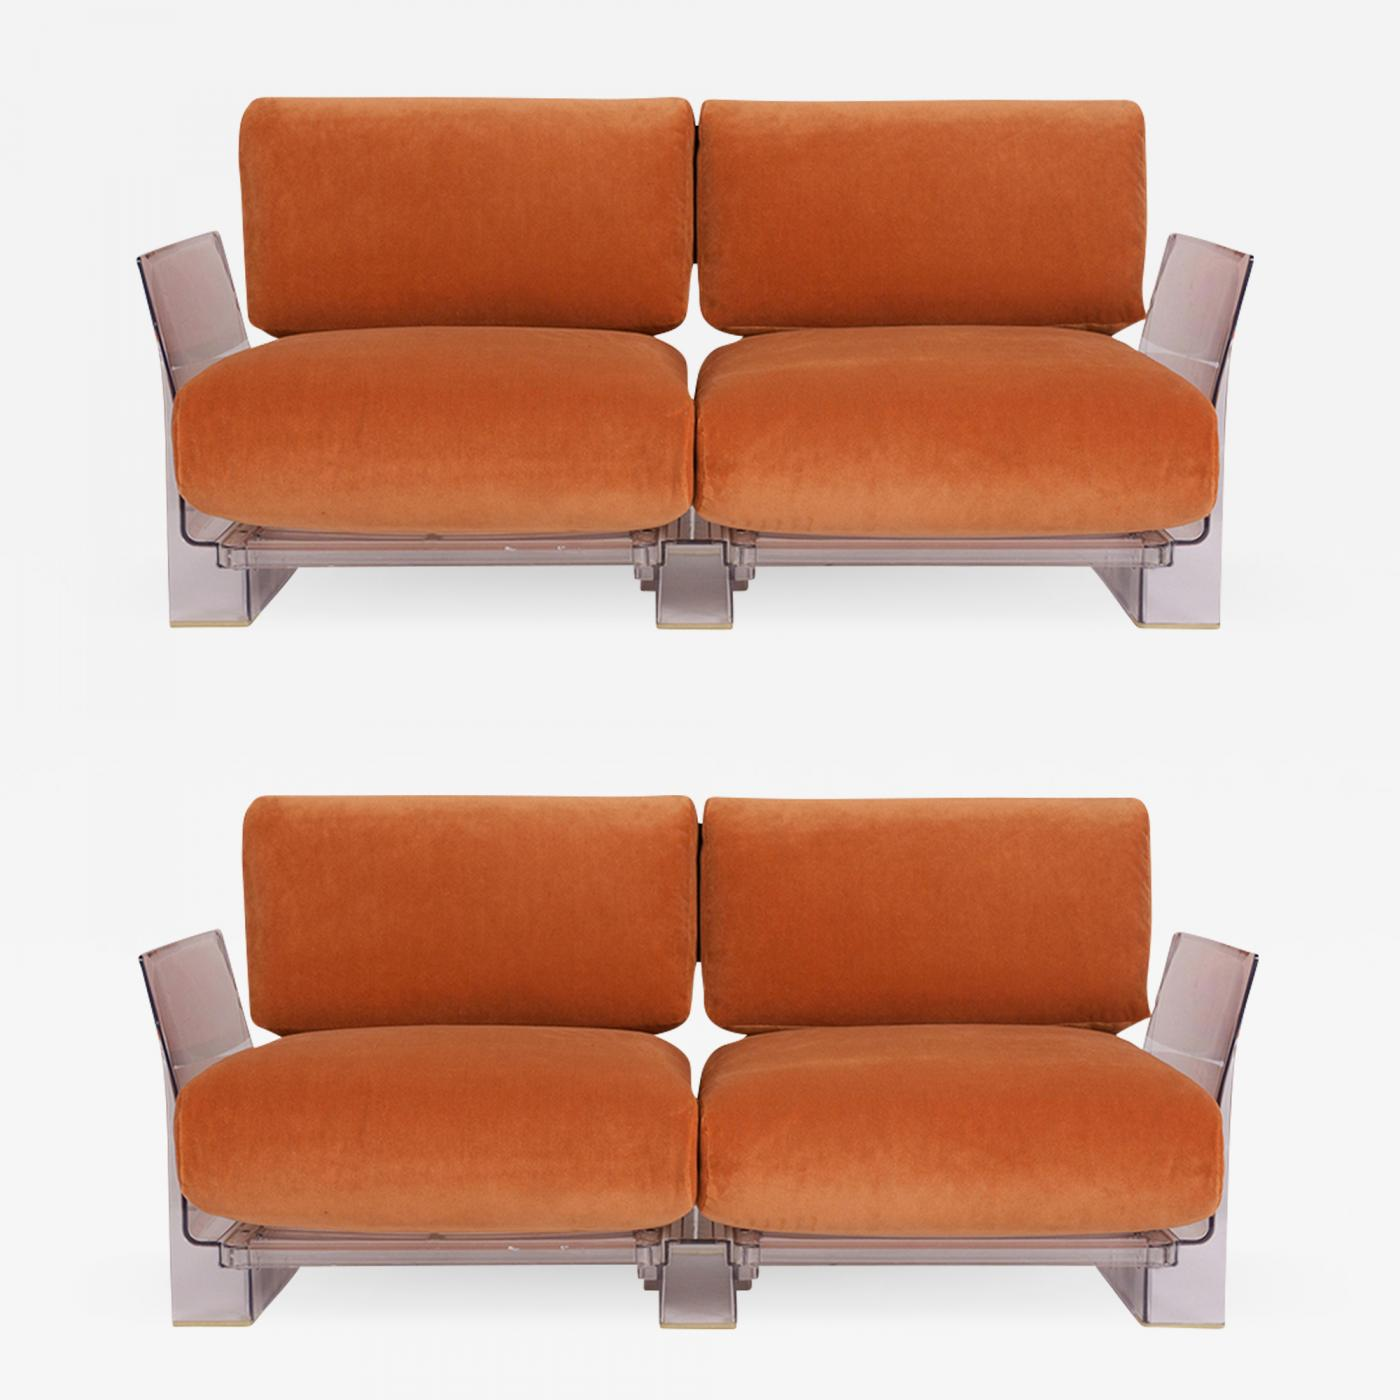 Kartell Sofa Piero Lissoni Pair Of Lucite Love Seats Sofas By Piero Lissoni For Kartell